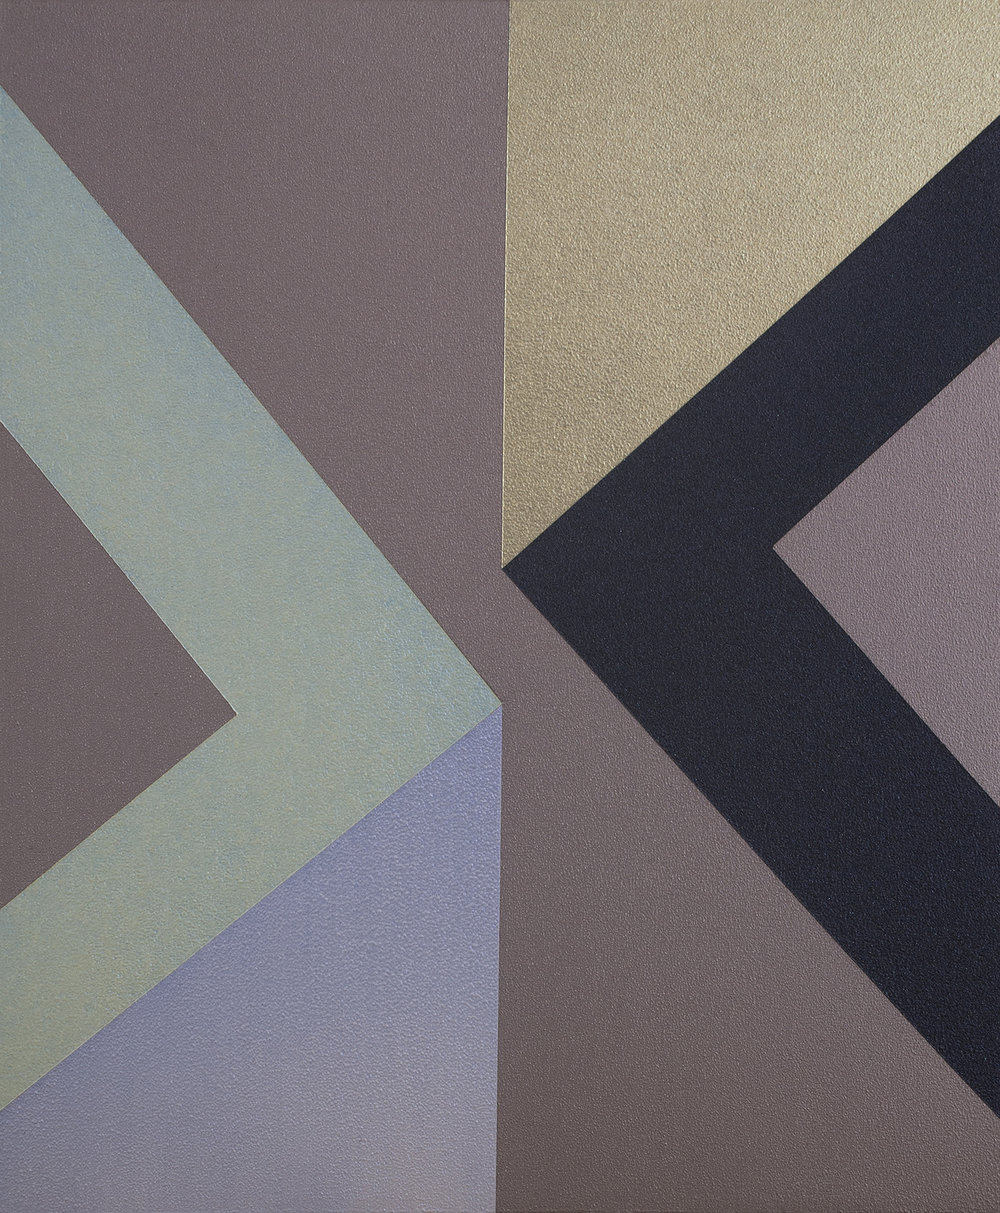 SAMARA ADAMSON-PINCZEWSKI  Gold Corner 2  2014 acrylic on wood panel 30 × 25 cm